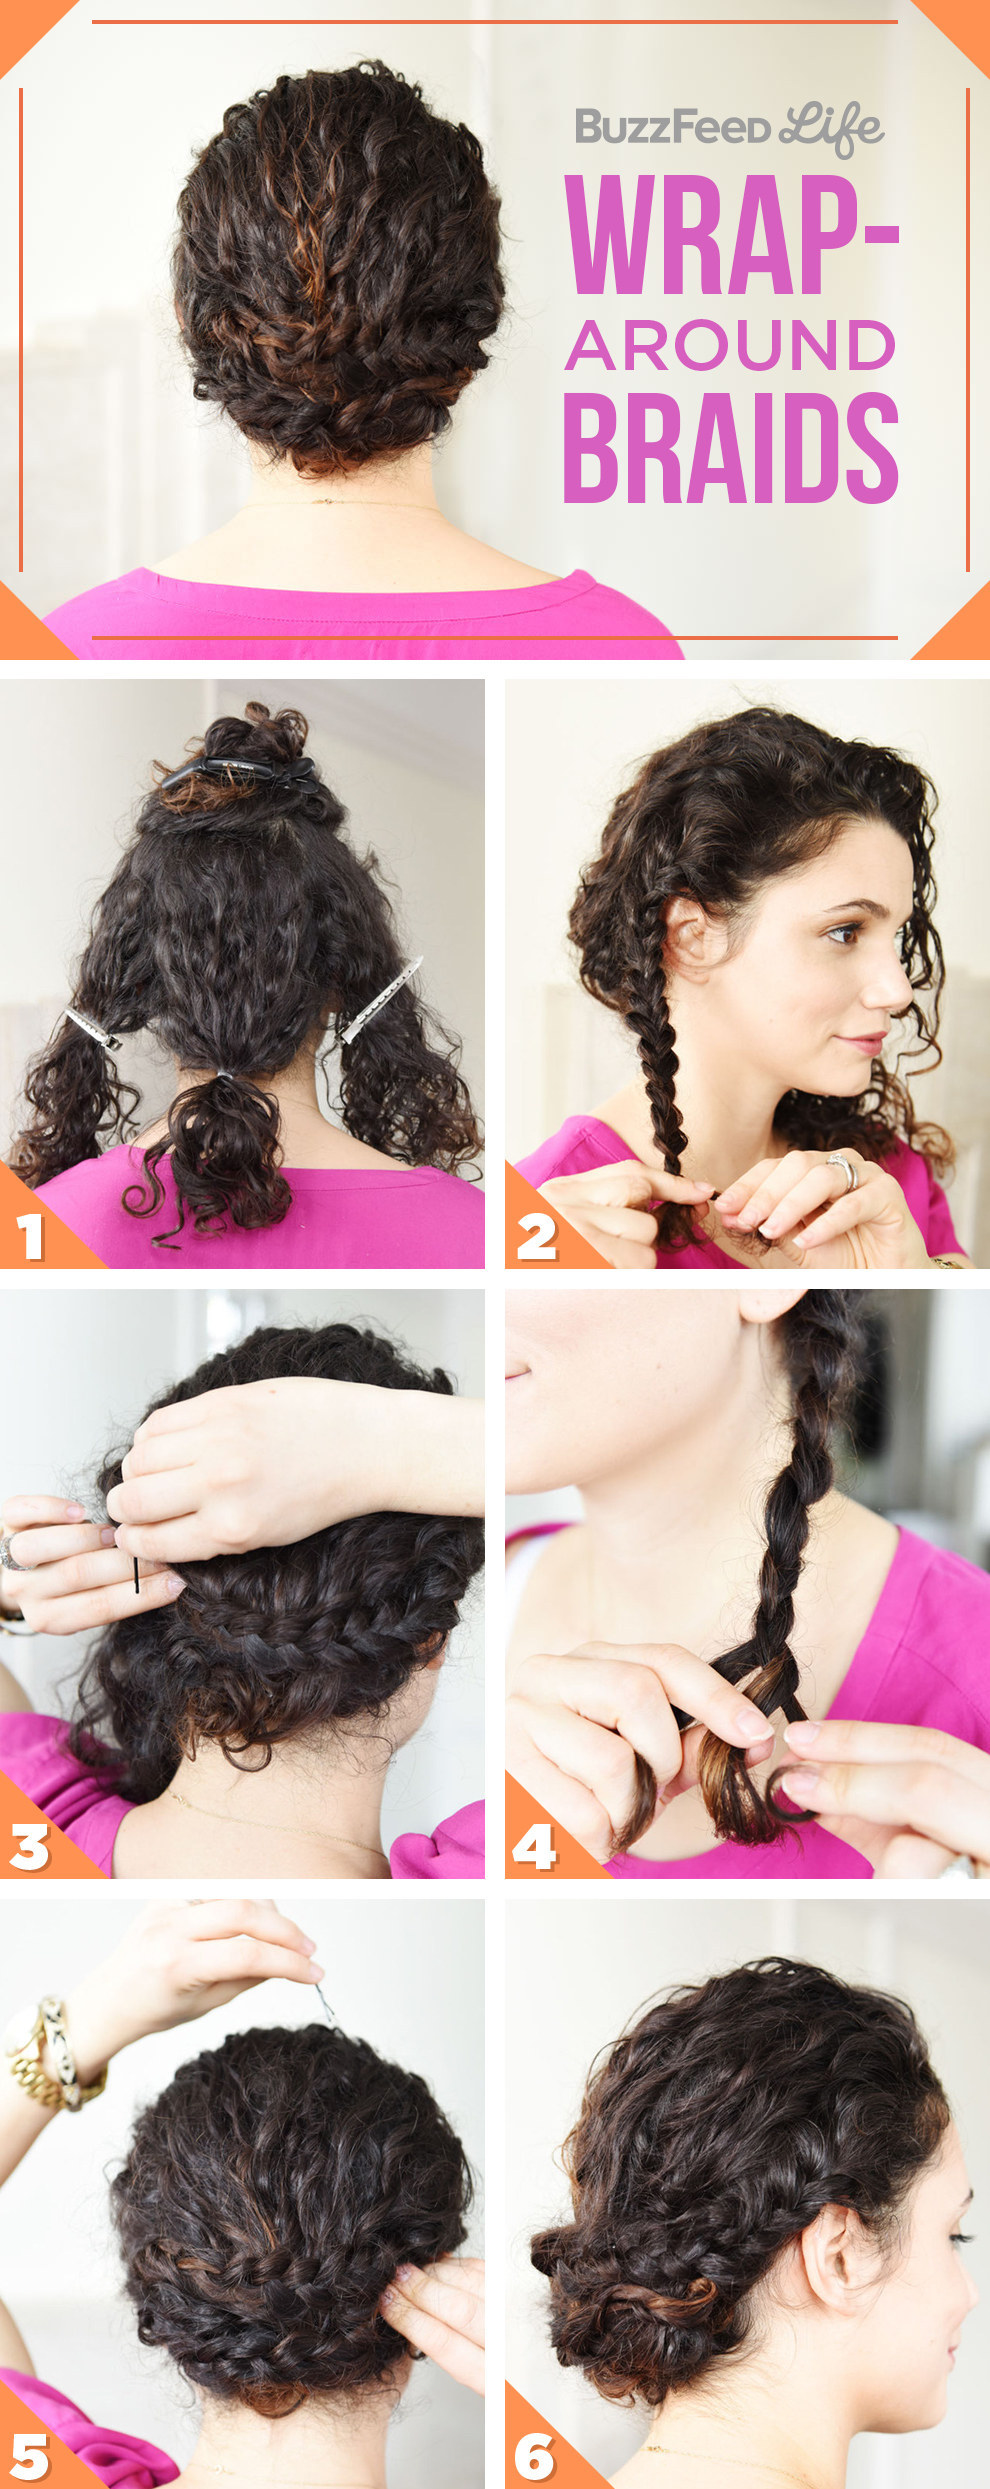 26 Incredible Hairstyles You Can Learn In 10 Steps Or Less Wrap Around Braids